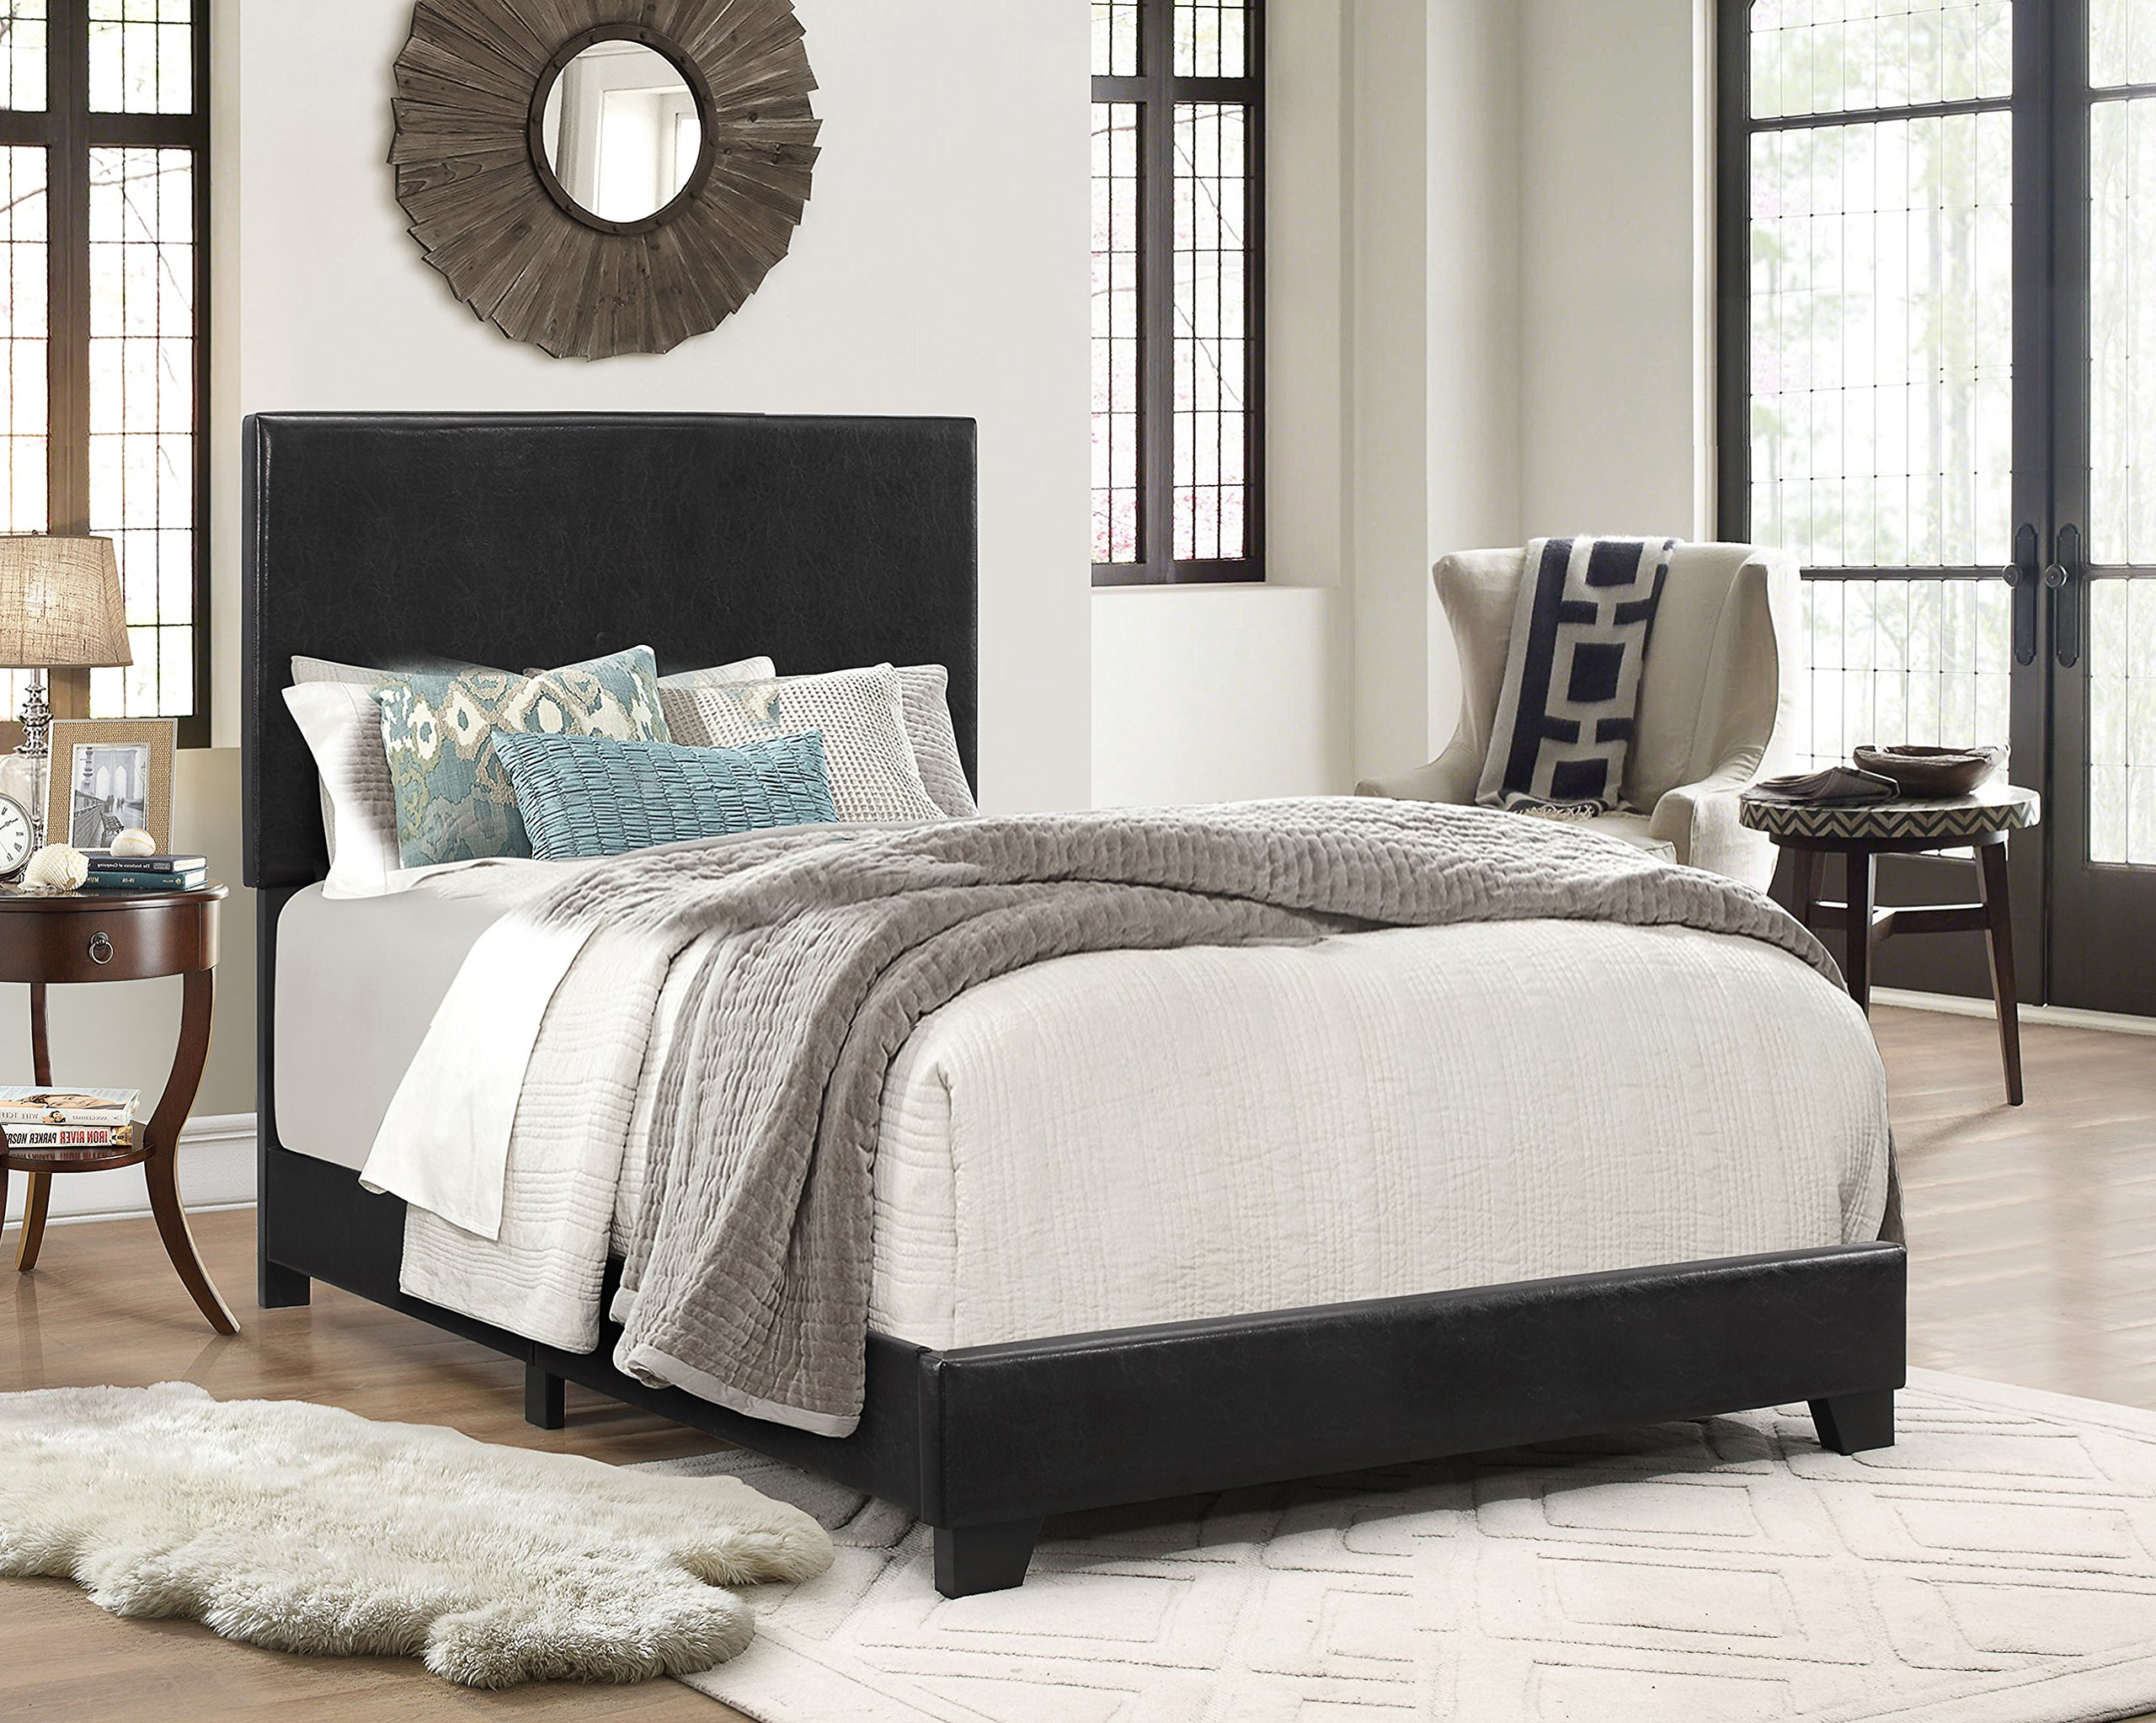 Crown Mark Upholstered Panel Bed in Black, Twin